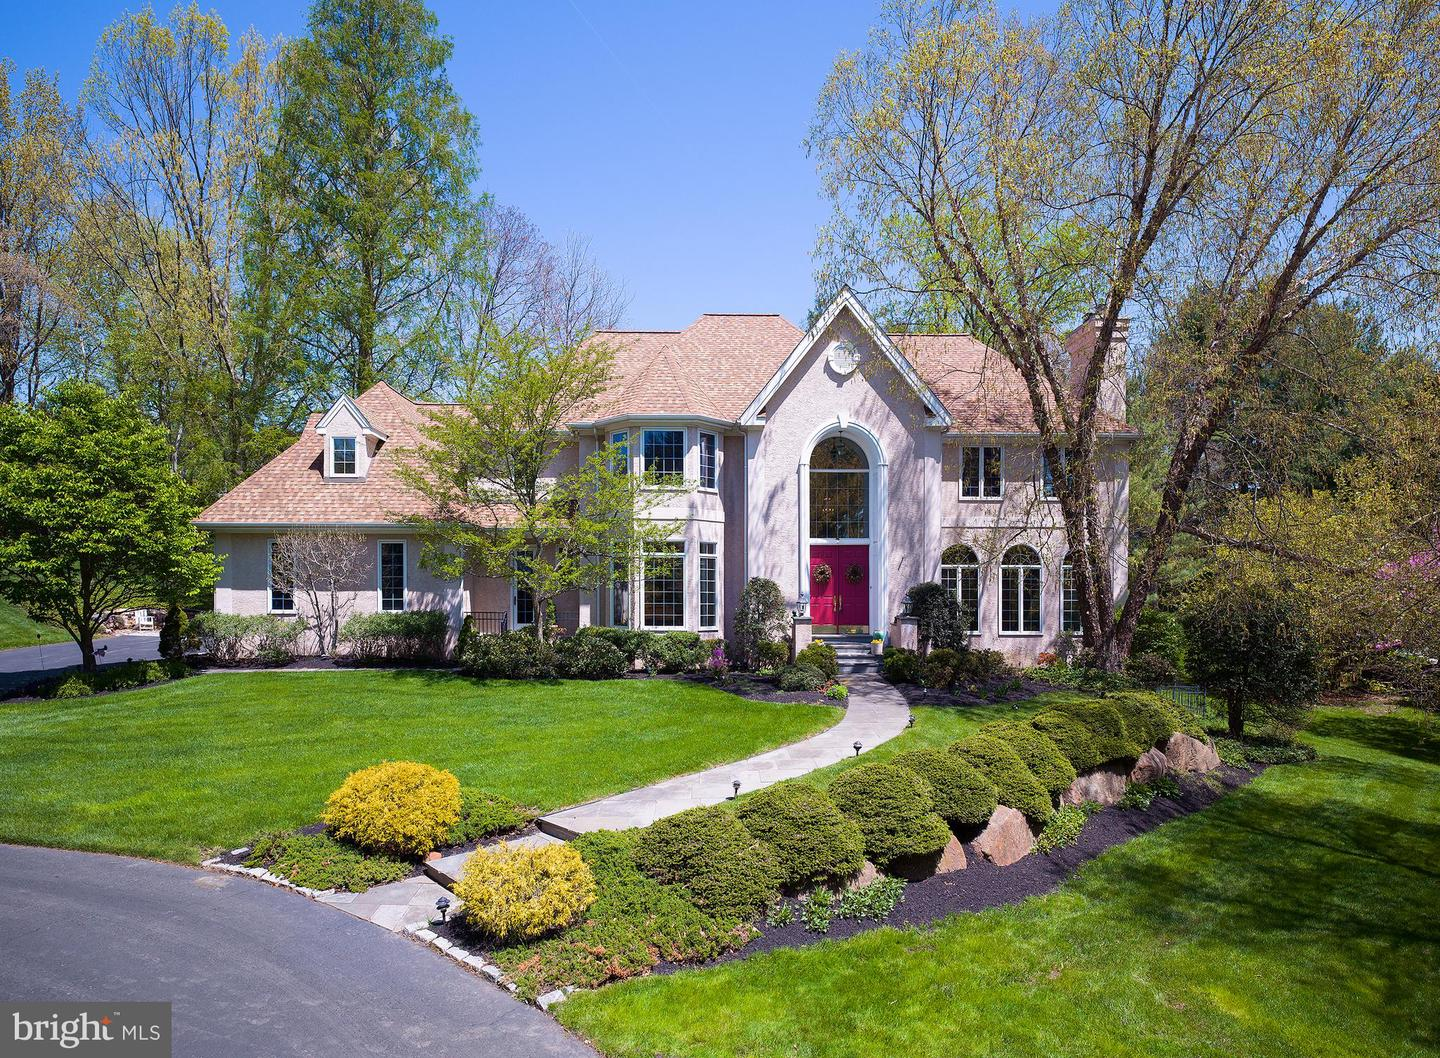 2 Aronwold Lane Newtown Square, PA 19073